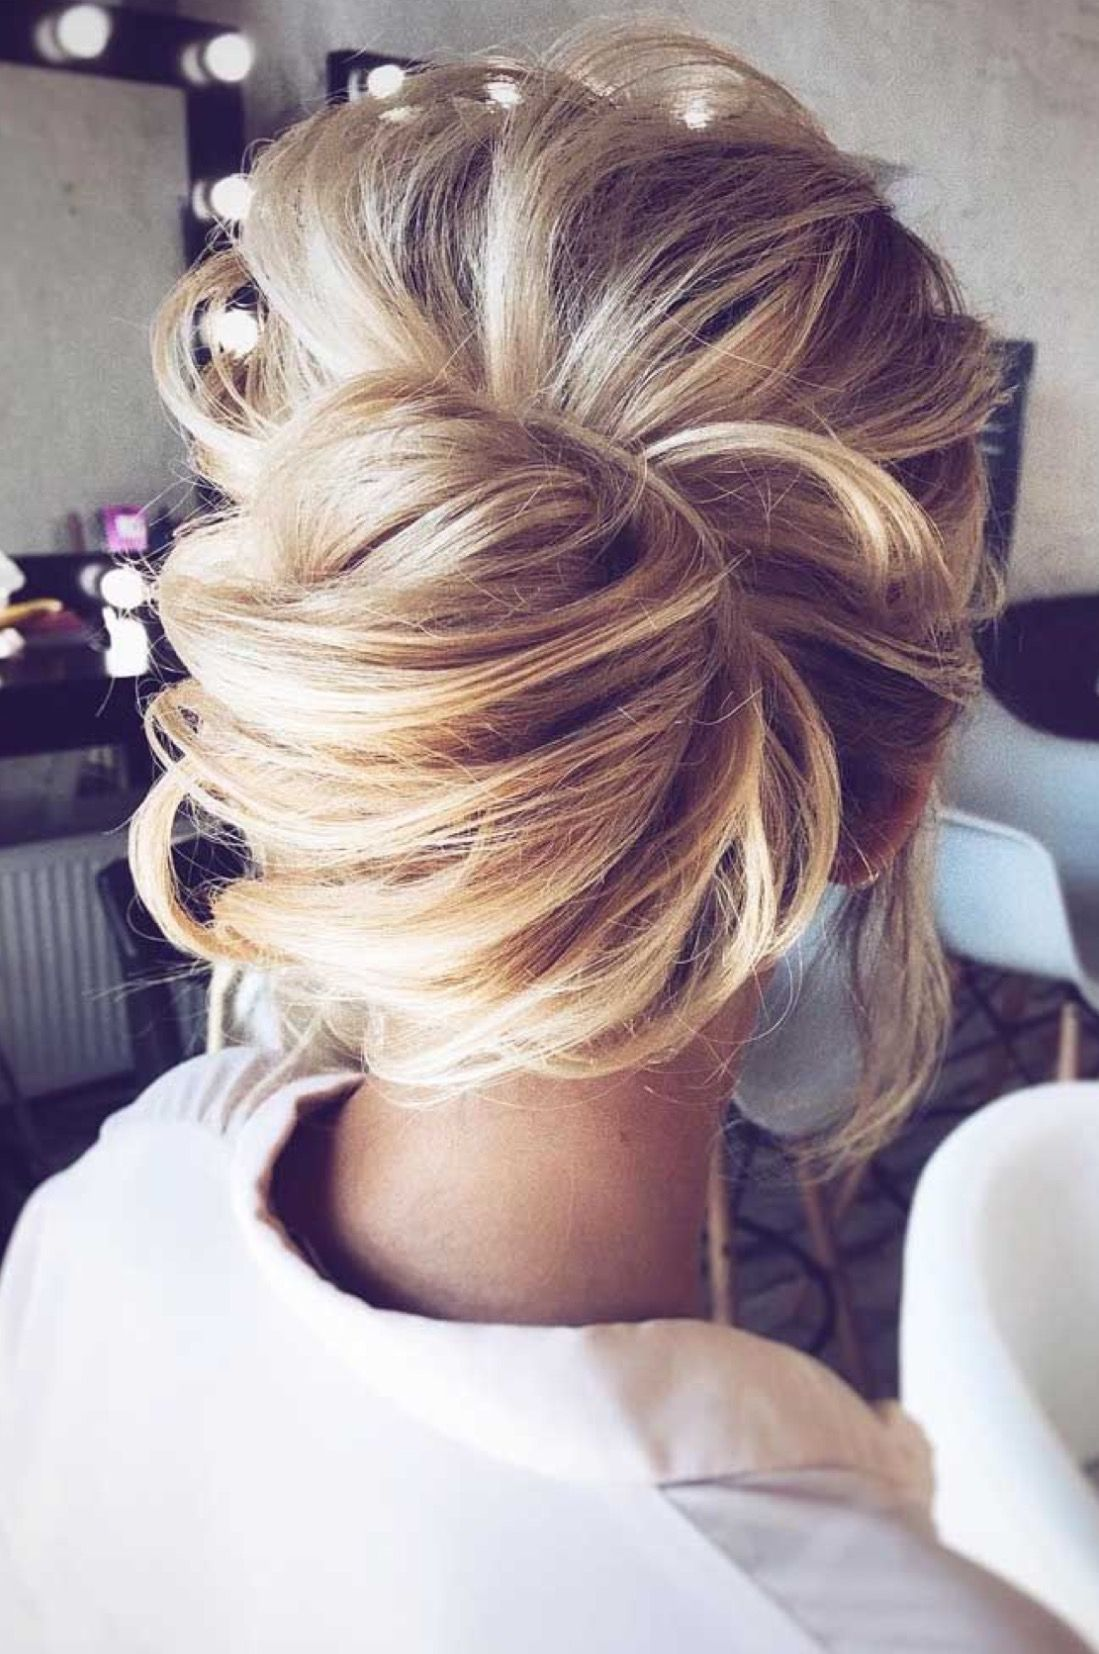 Modern Day Chignon Style Low Messy Bun Updo Beautiful Look For Any Special Occasion Hair Styles Long Hair Styles Wedding Hairstyles